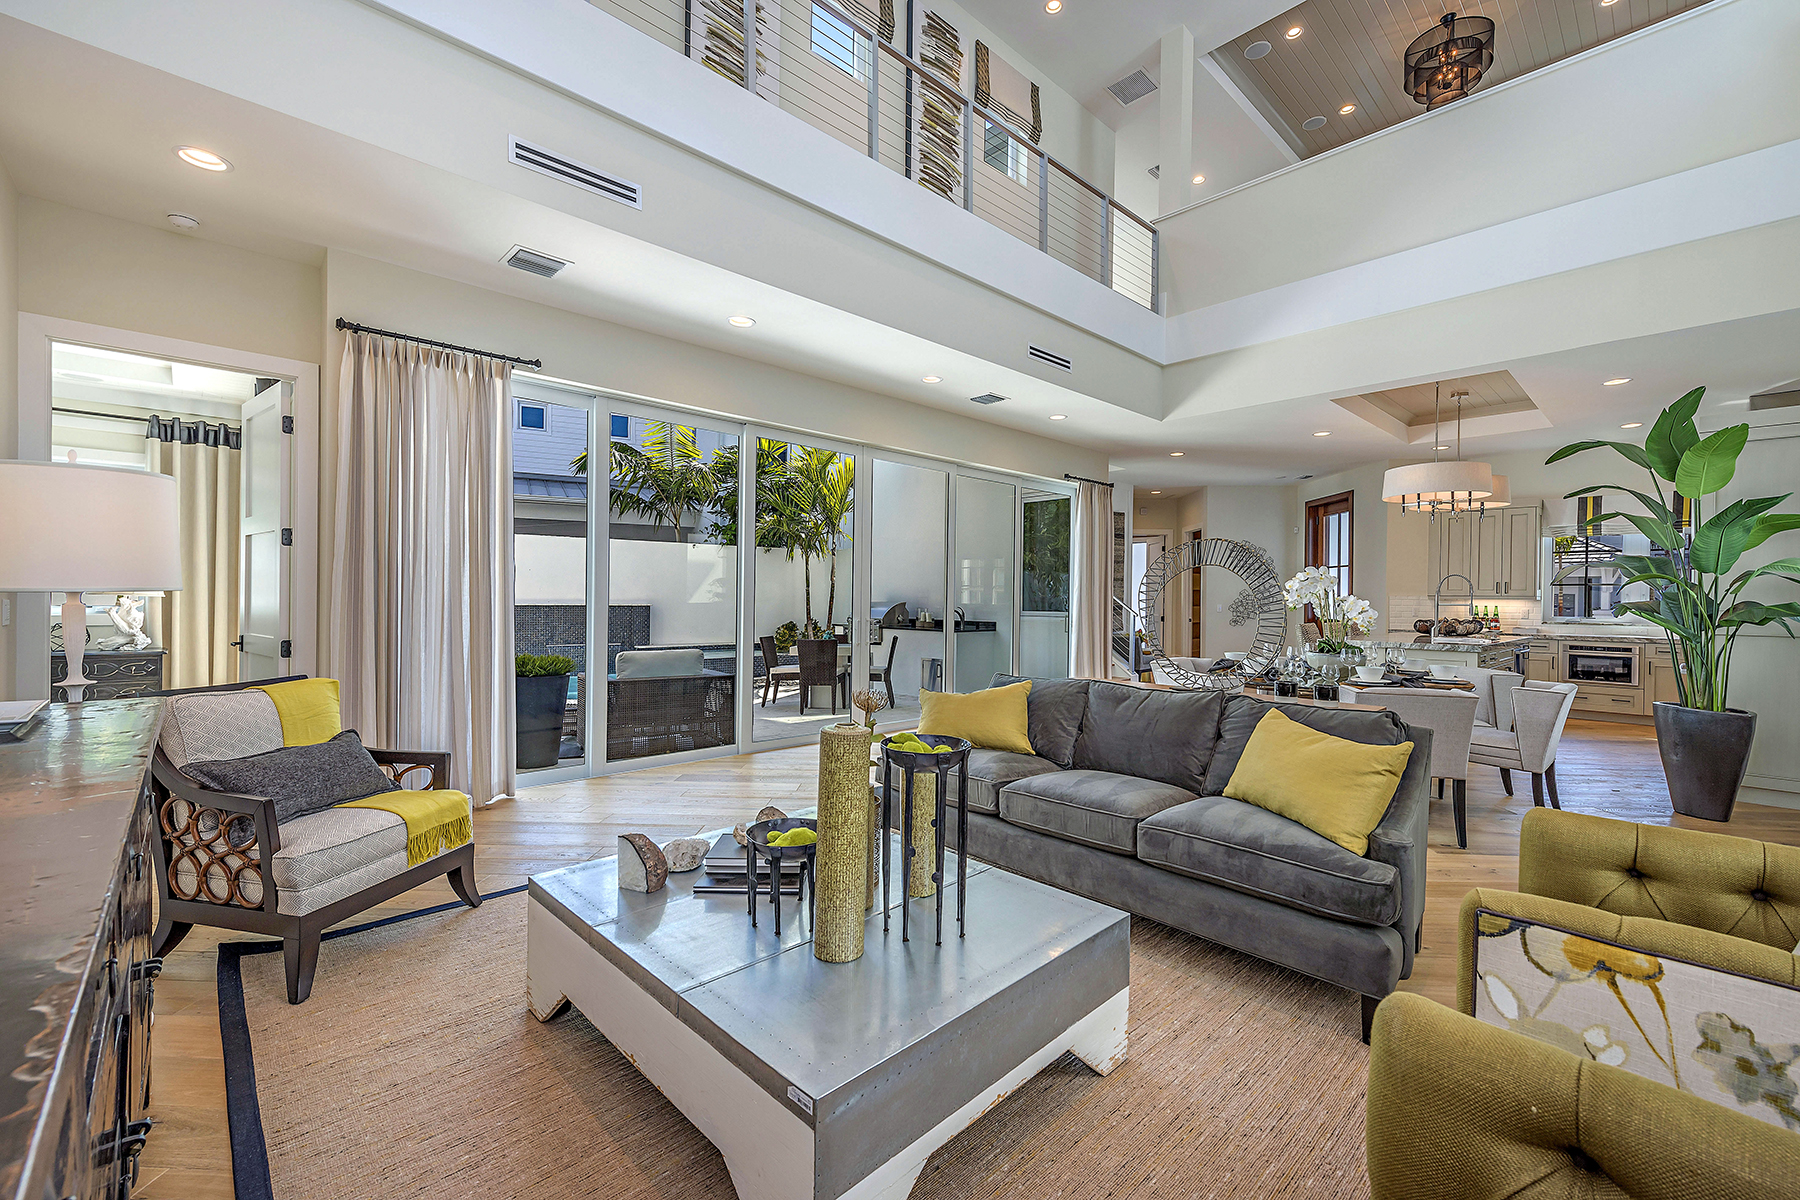 Single Family Home for Sale at RESIDENCES AT MERCATO 9165 Mercato Way, Naples, Florida 34108 United States